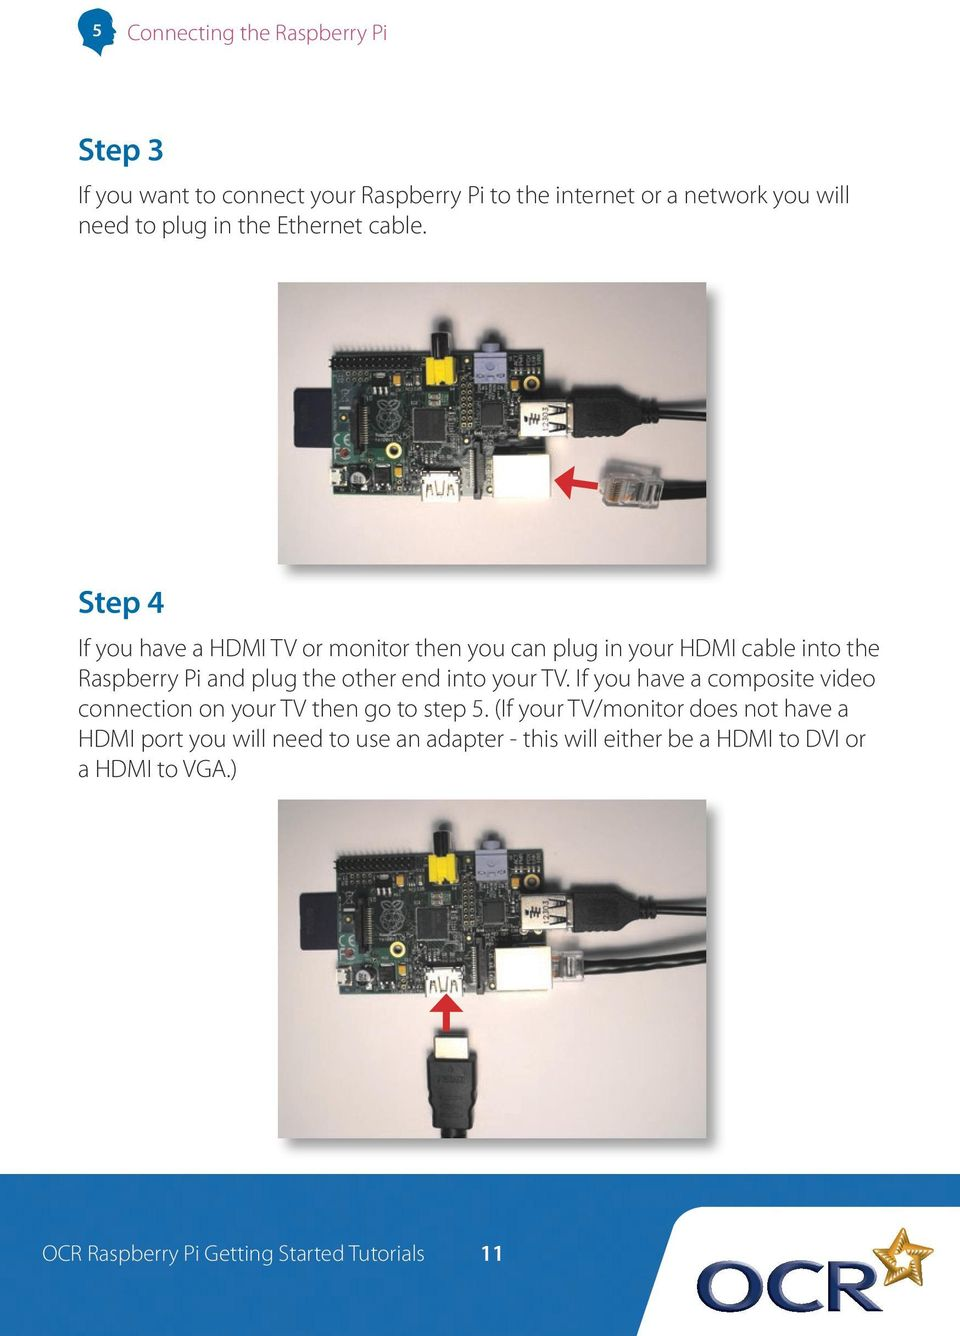 Step 4 If you have a HDMI TV or monitor then you can plug in your HDMI cable into the Raspberry Pi and plug the other end into your TV.